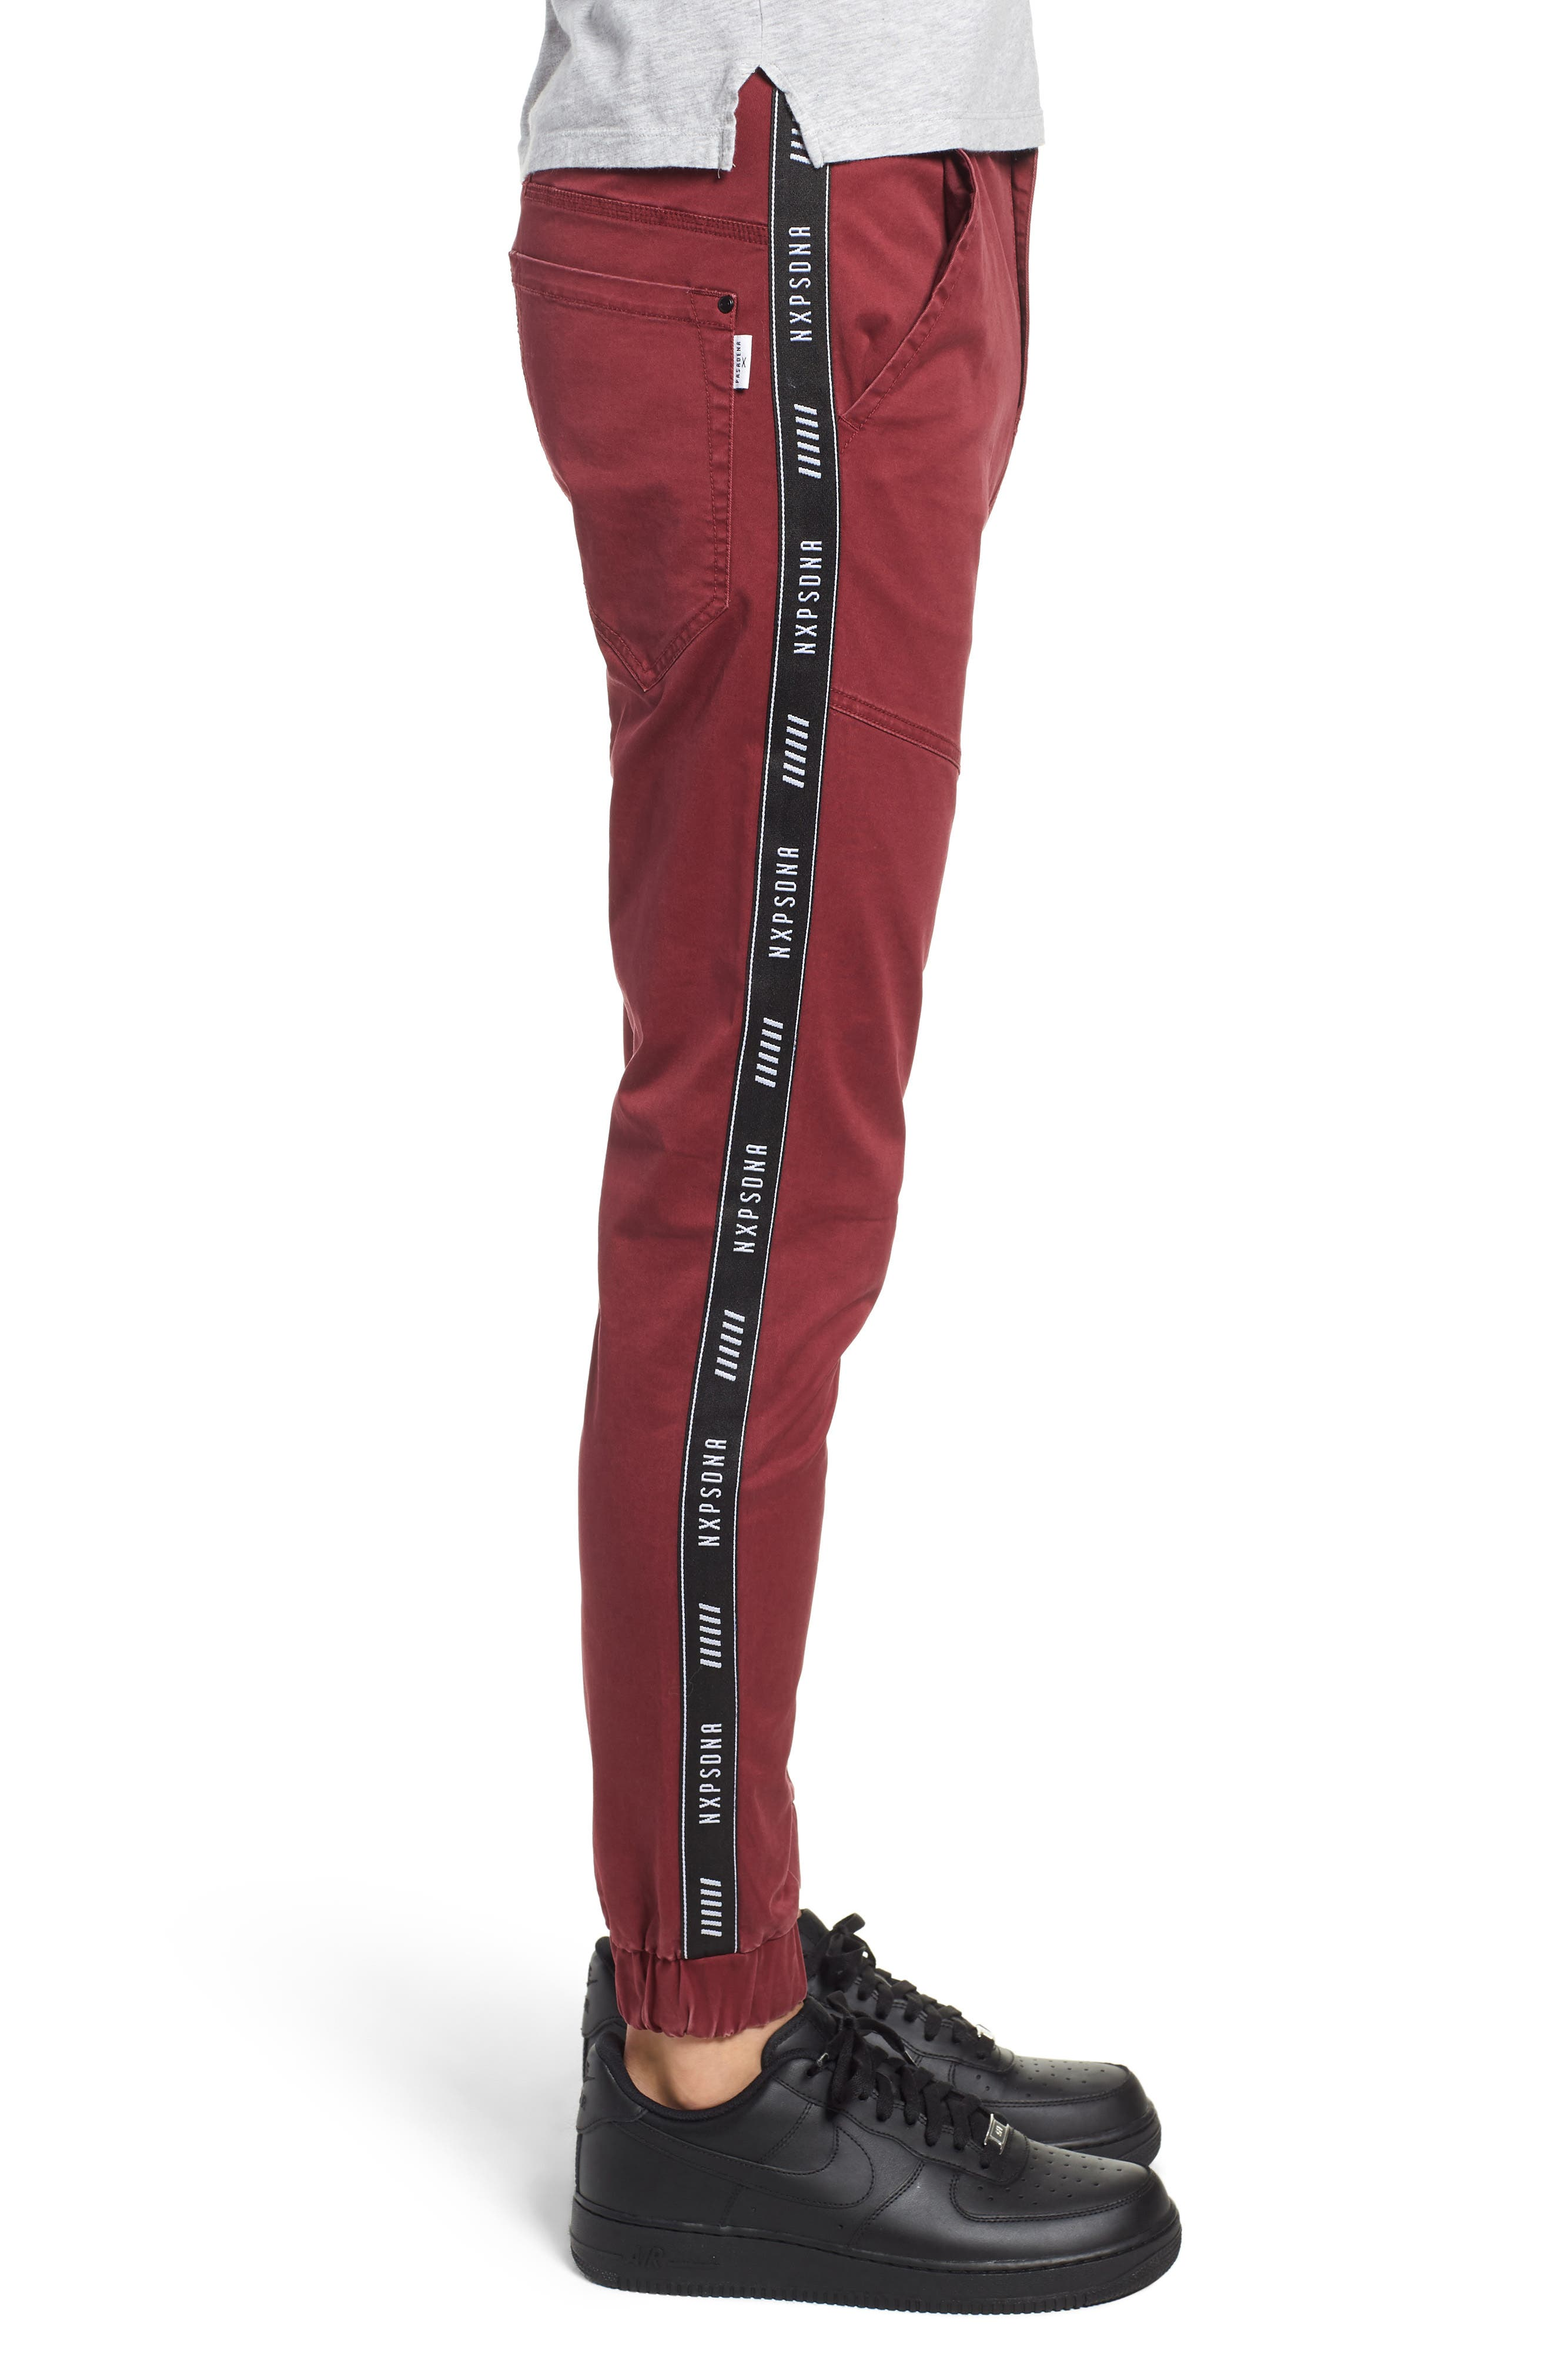 Firebrand Taped Chinos,                             Alternate thumbnail 3, color,                             BORDEAUX